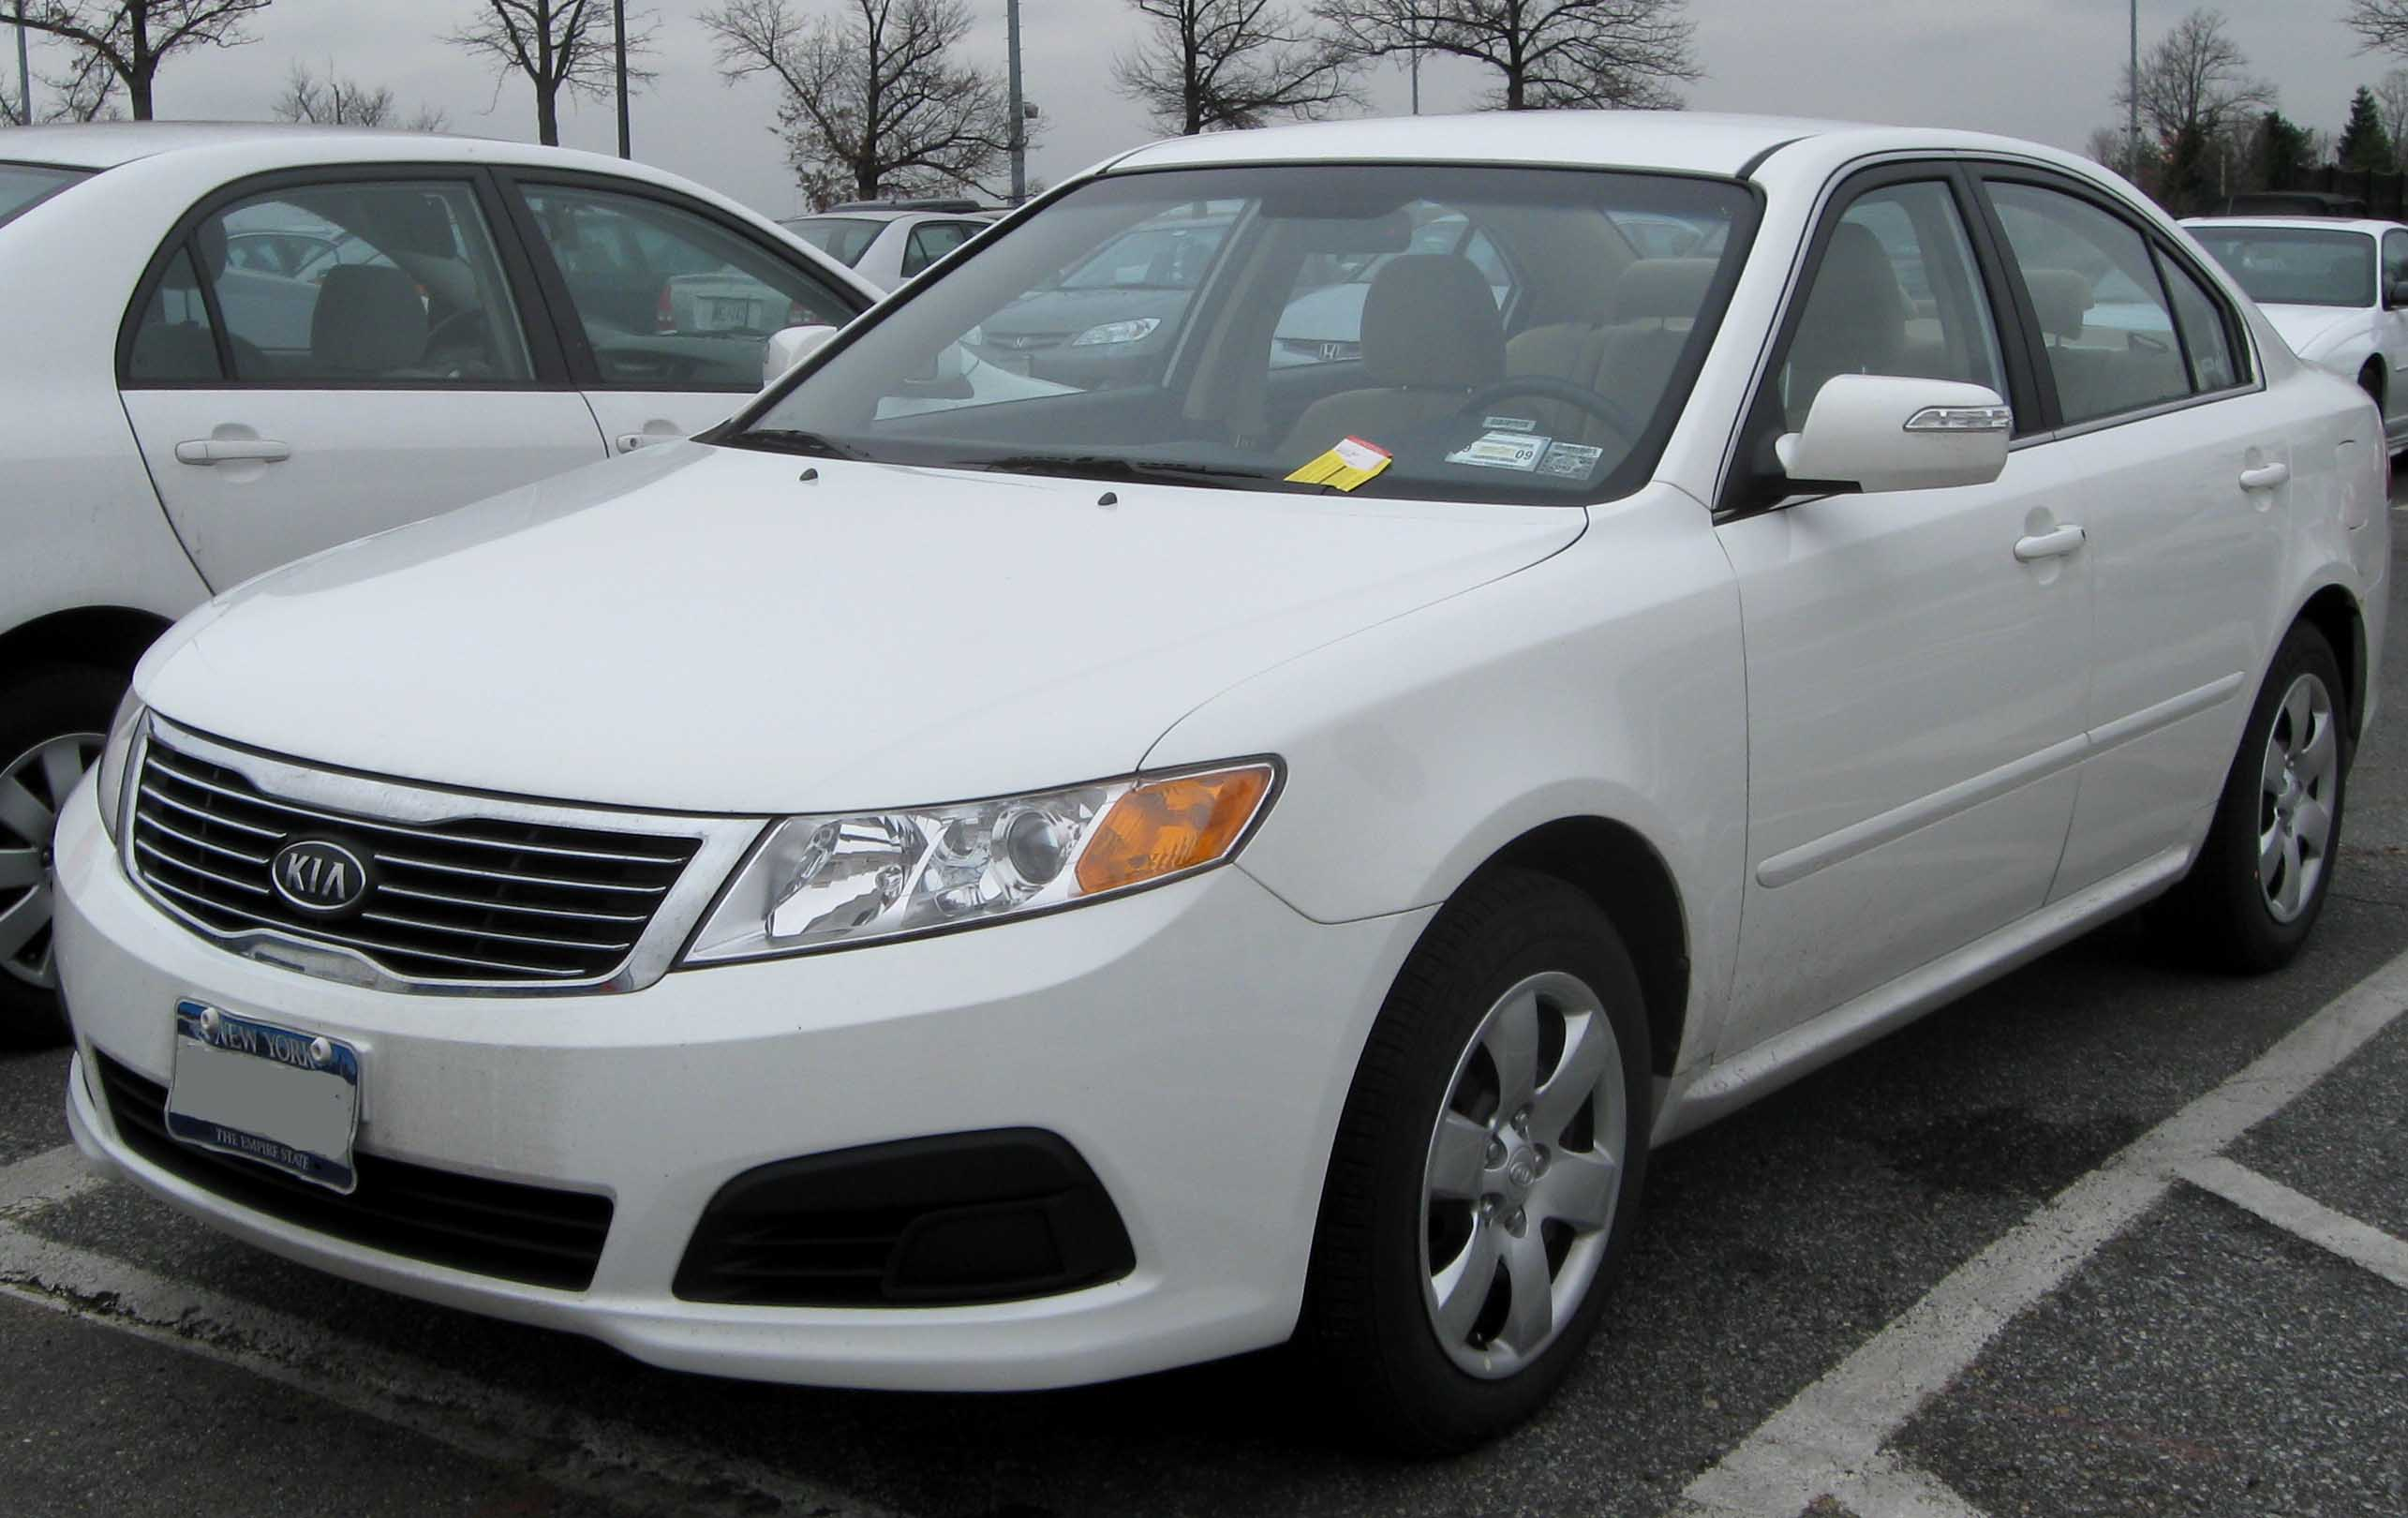 File:09 Kia Optima LX